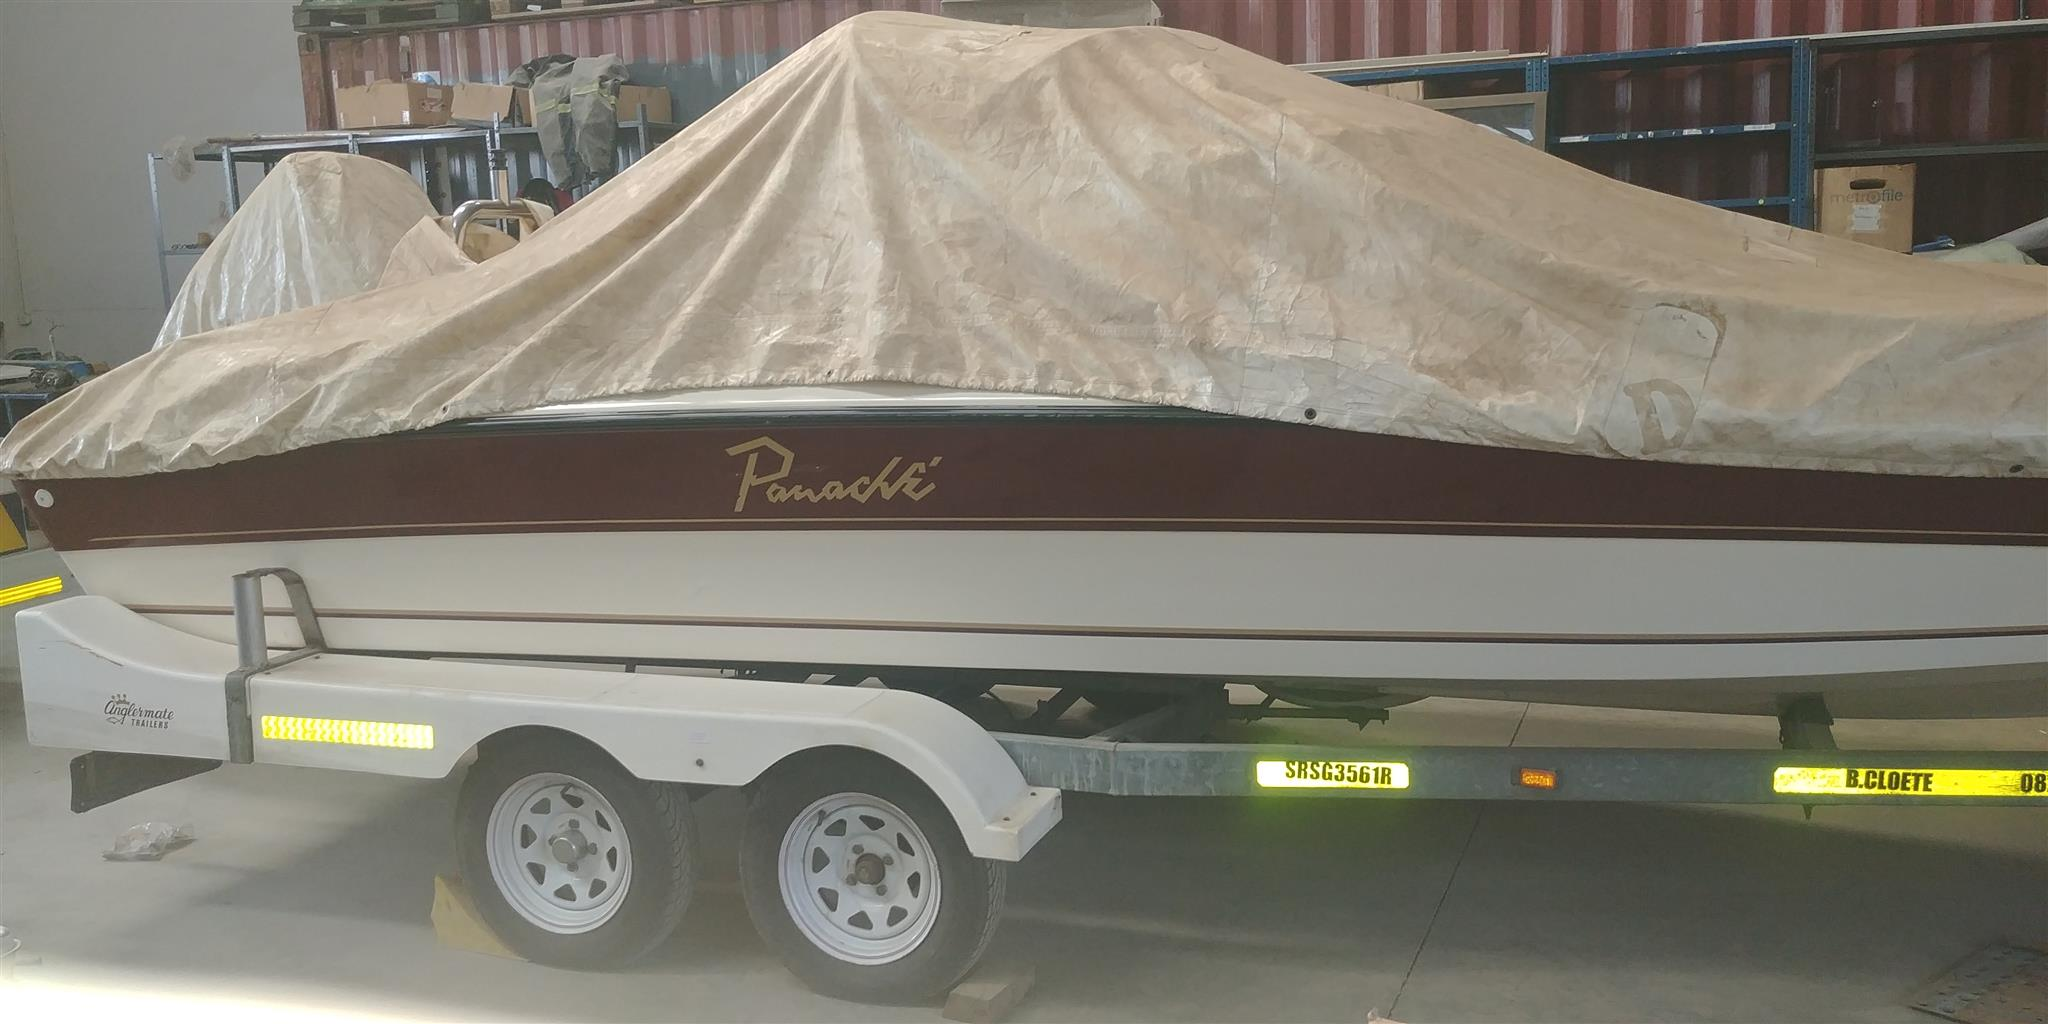 Panache Speed Boat for sale